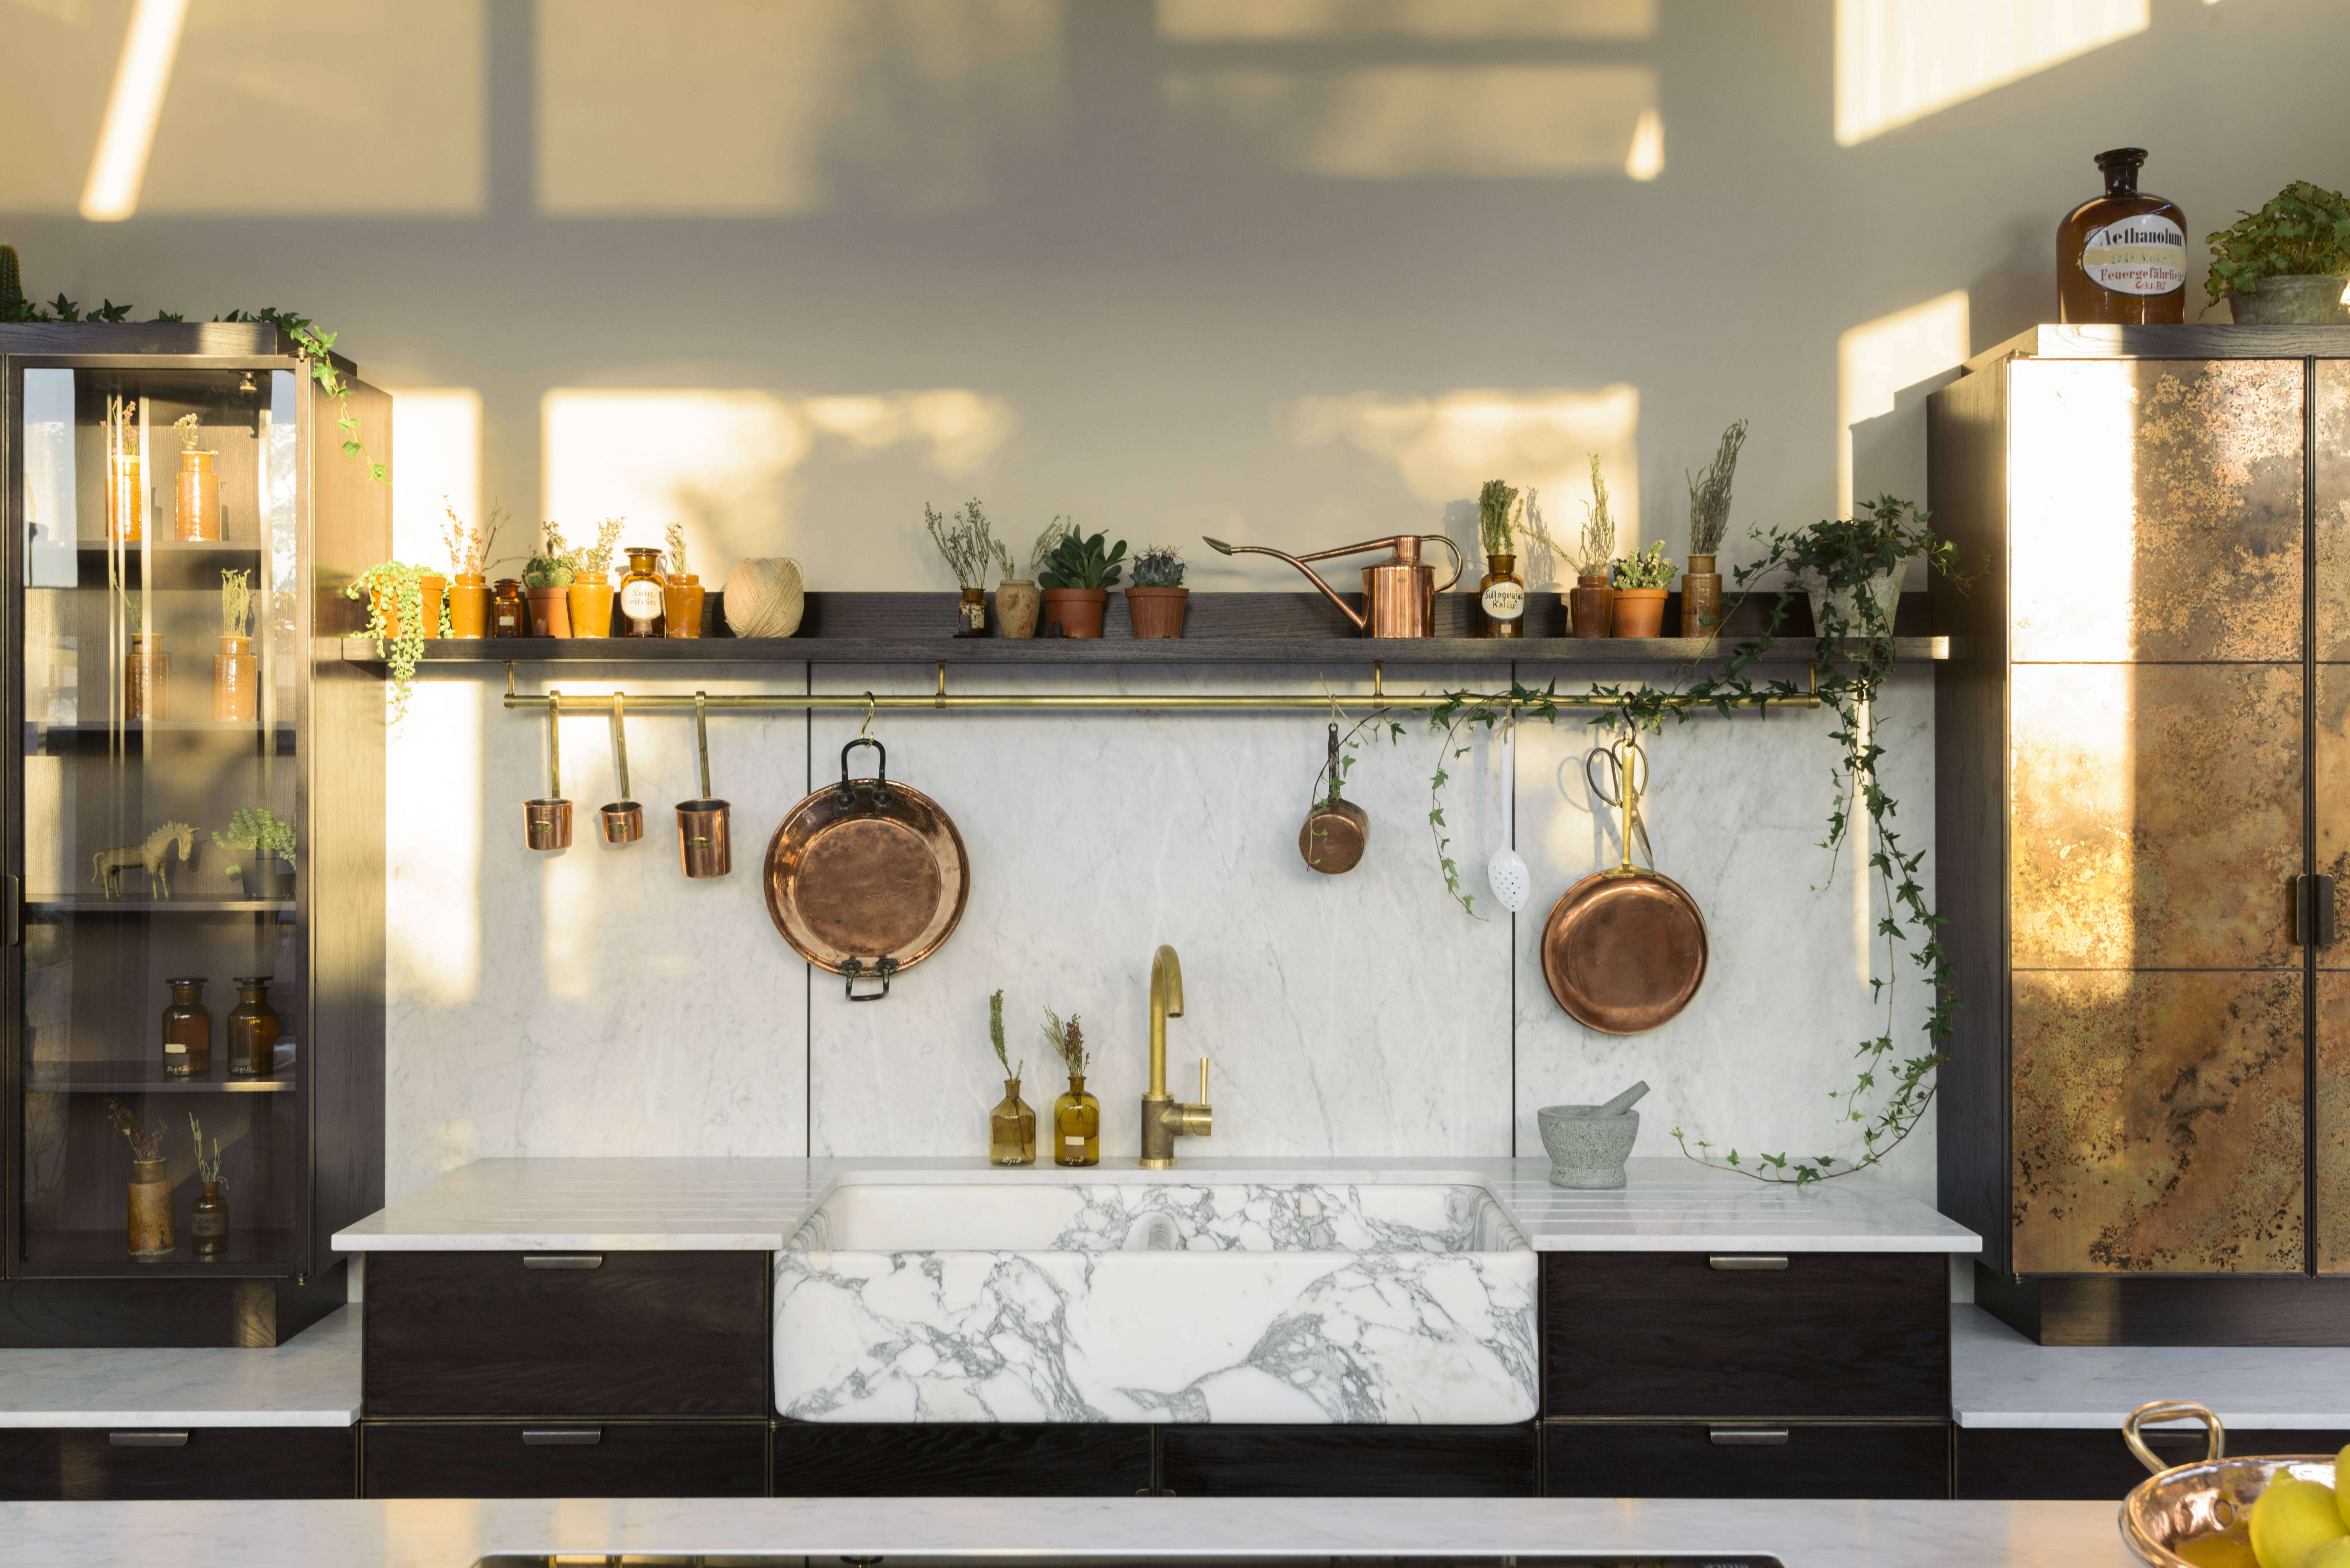 Kitchen of the Week: Charlie Smallbone and deVol Team Up to Create a ...